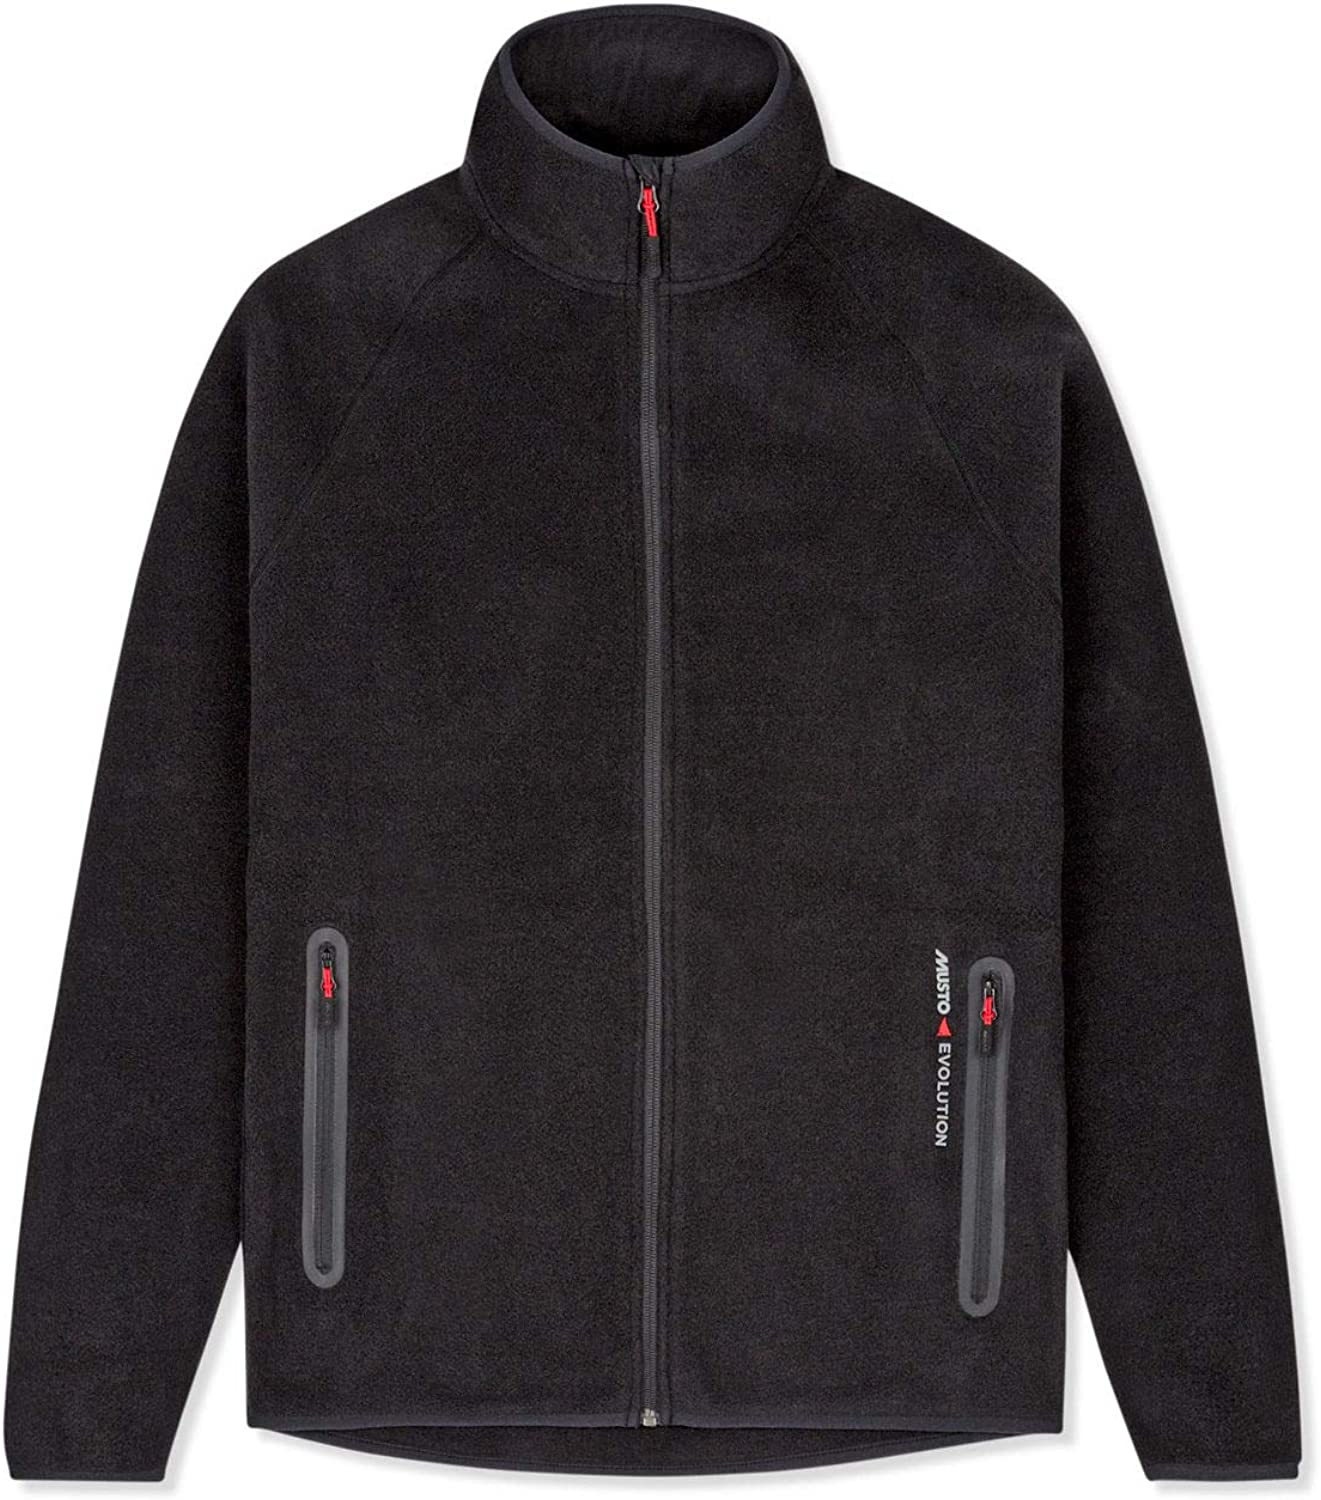 Musto Mens Essential Polartec Warm Fleece Coat Jacket BlackTwo hand pockets